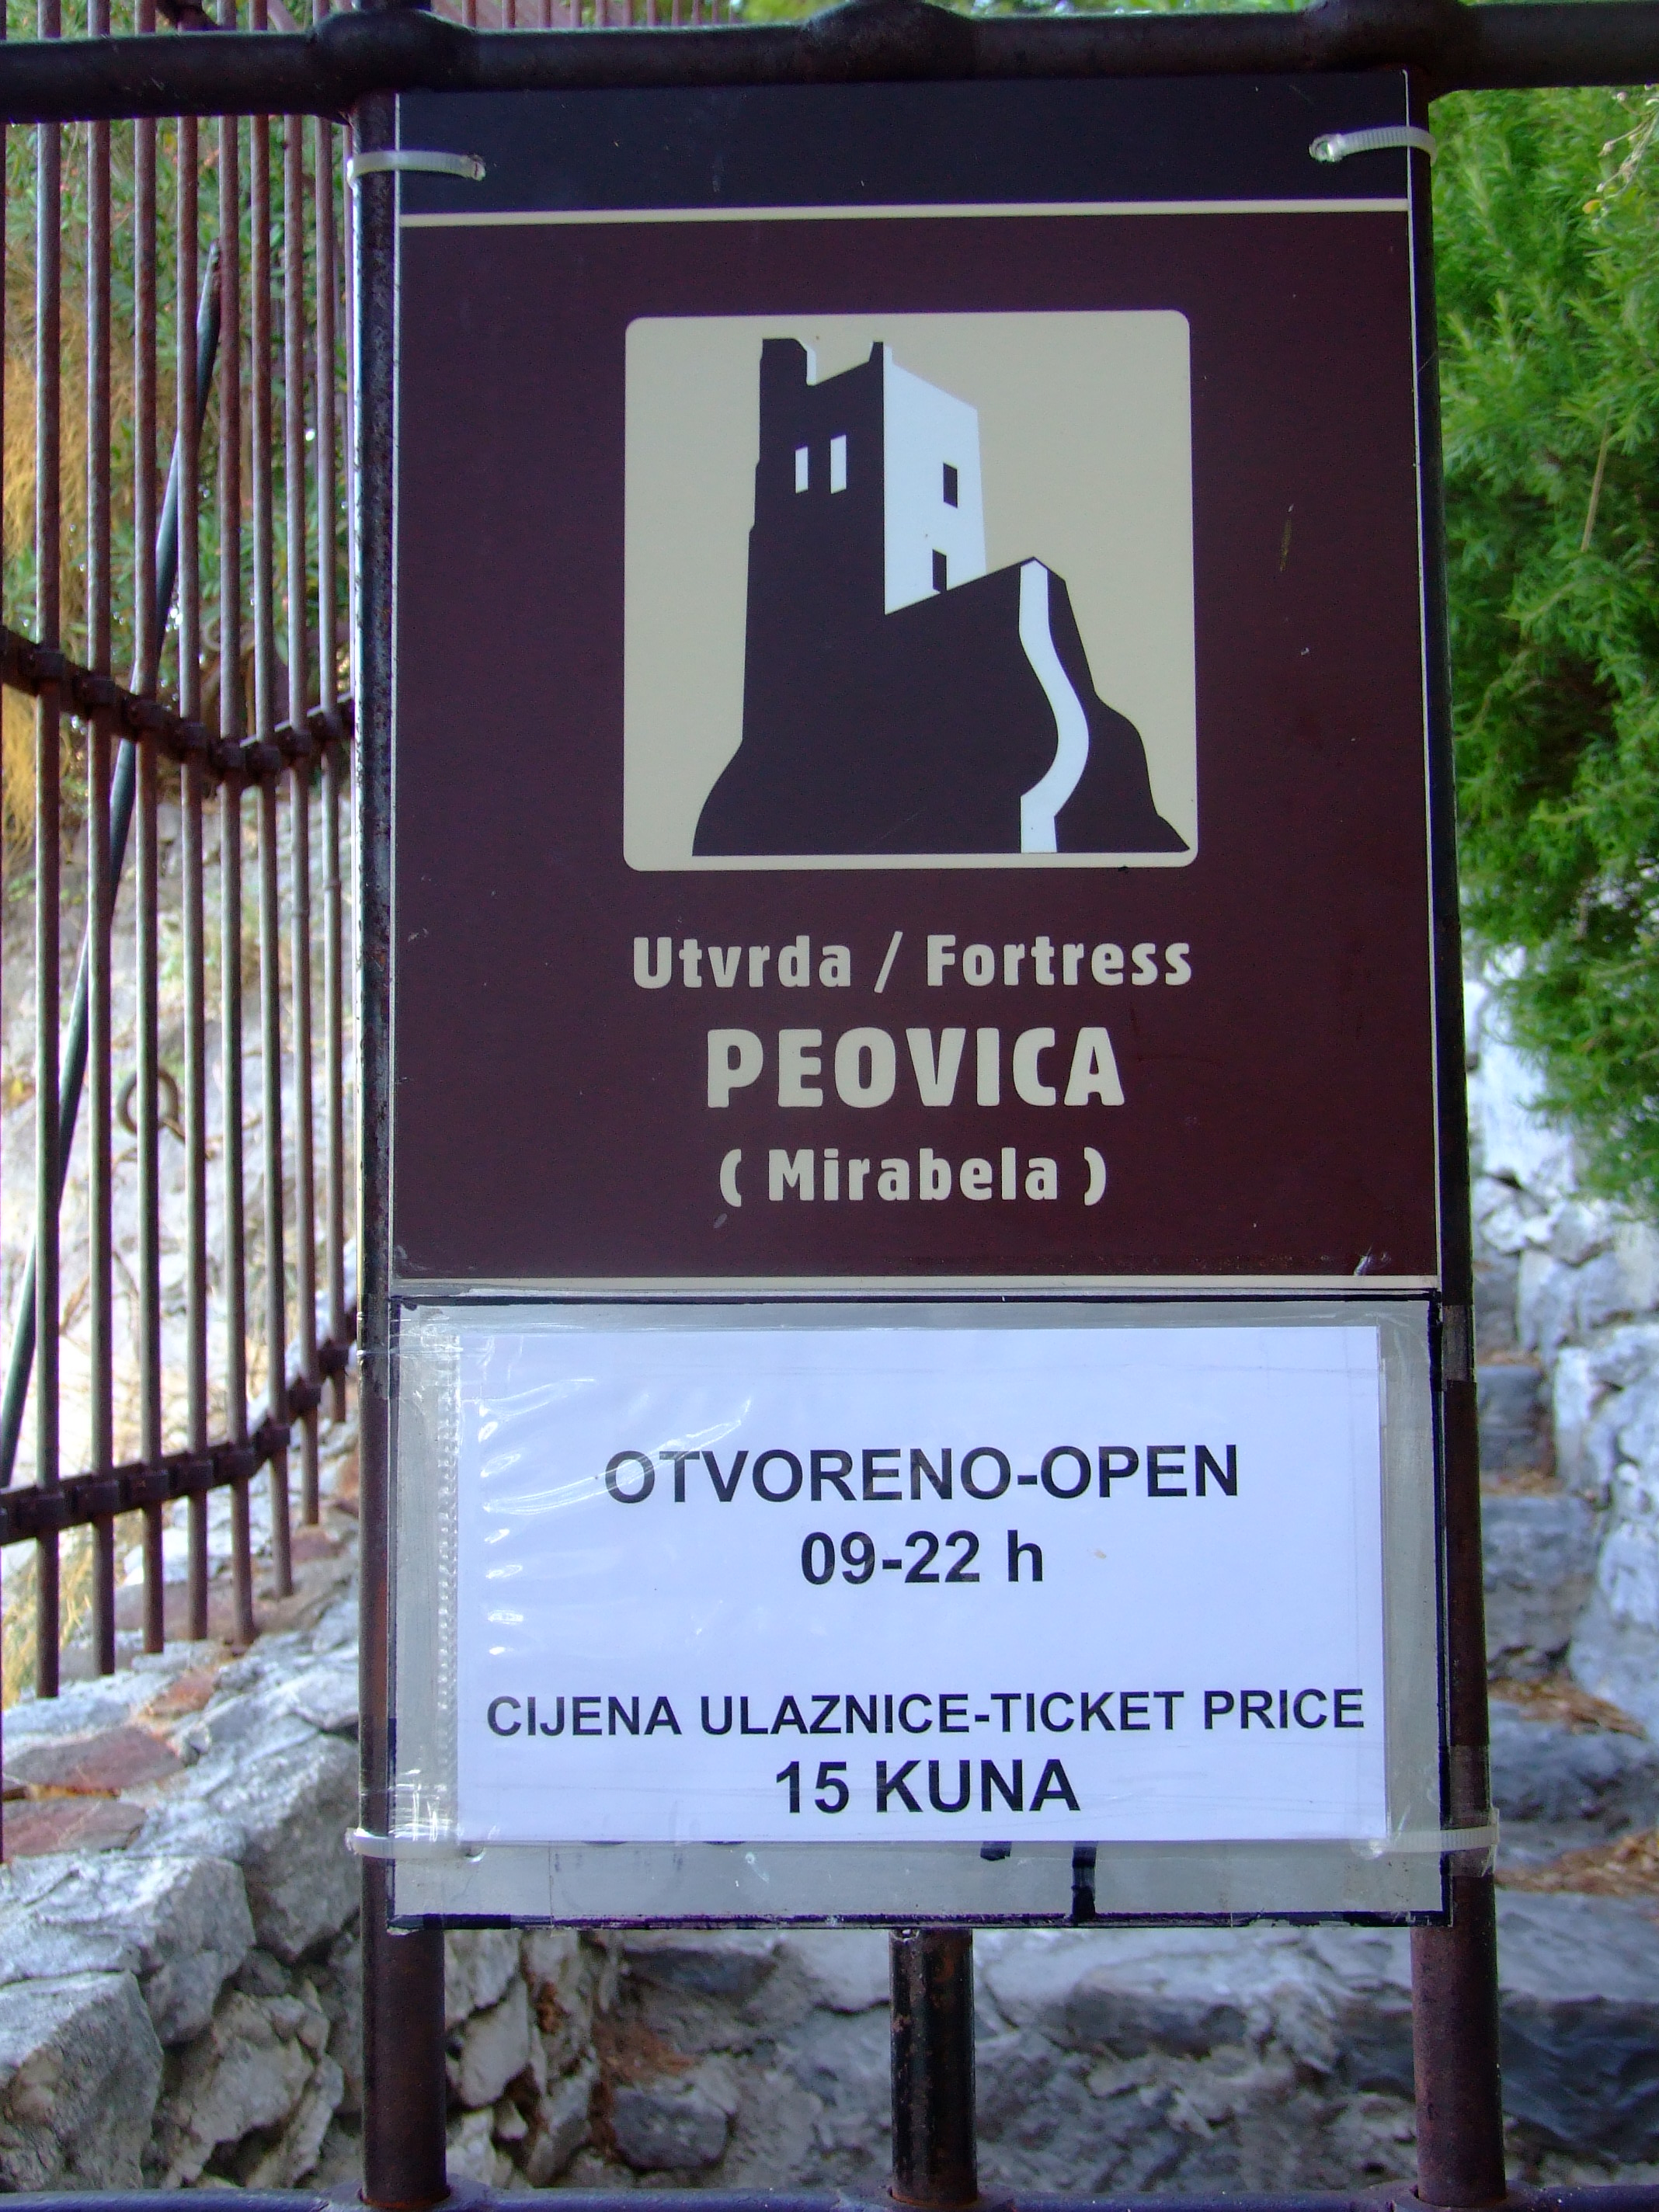 You can get to the entrance of the Mirabela Fortress by following the signs up a short 10-15 min. walk from the square where St. Michael's Church (Crkva Sv. Mihovila) is located on Knezova Kačića in Omiš old town.]